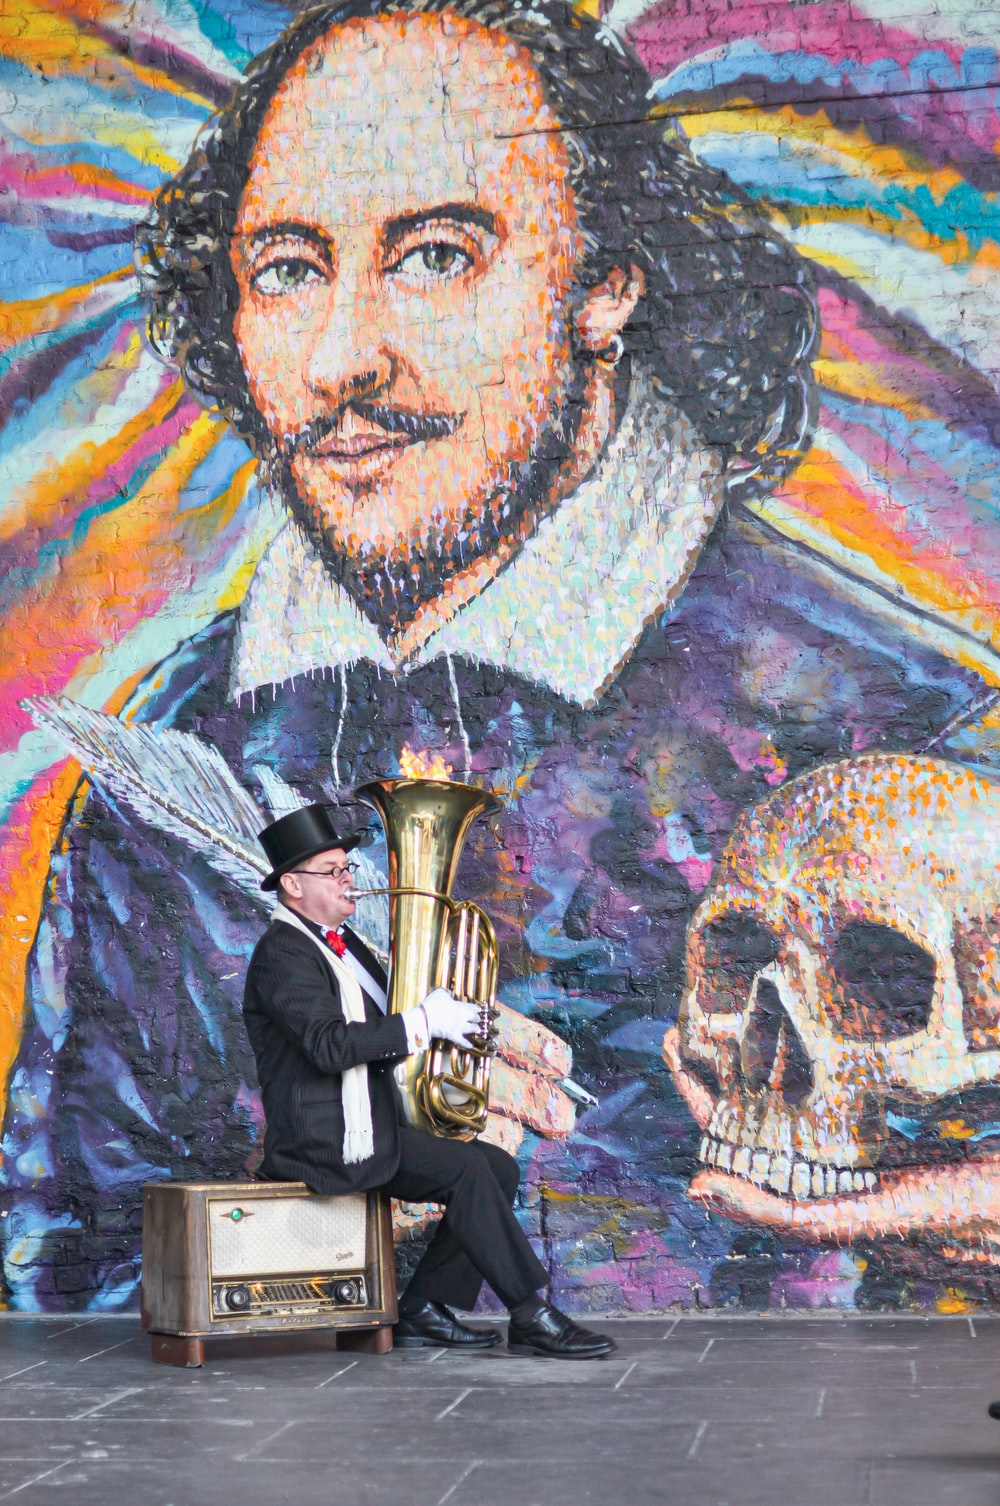 man in black suit jacket holding brass trumpet painting